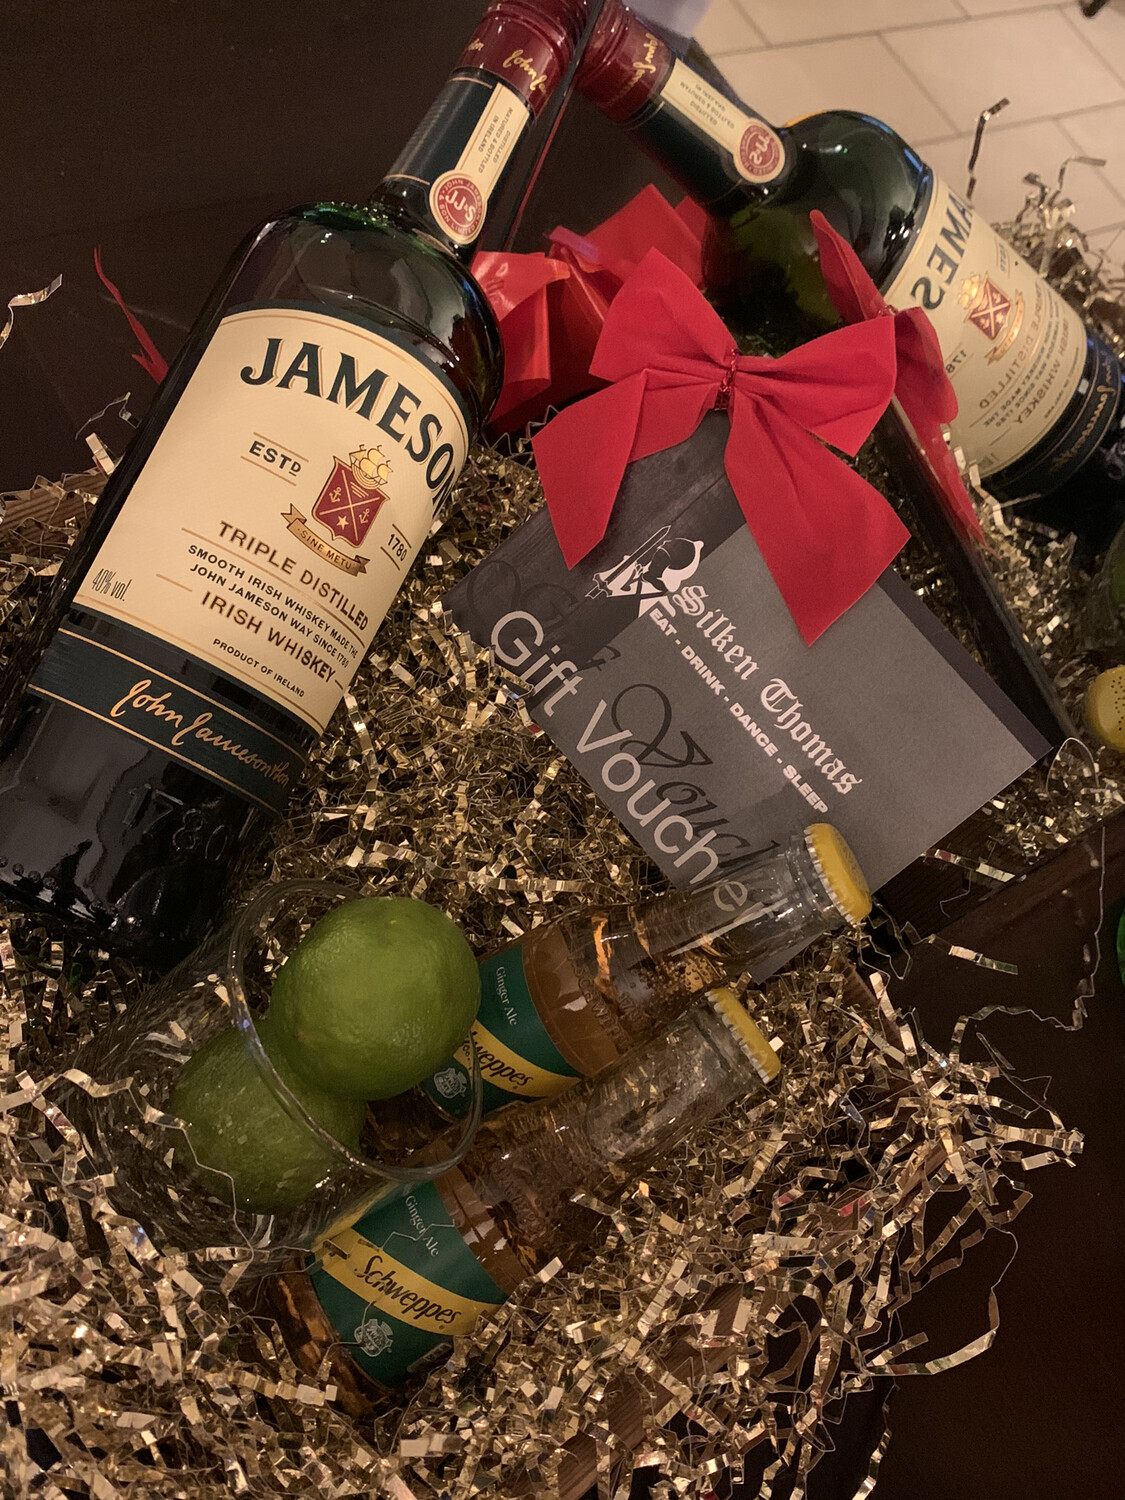 Jameson Hamper with Silken Thomas Voucher